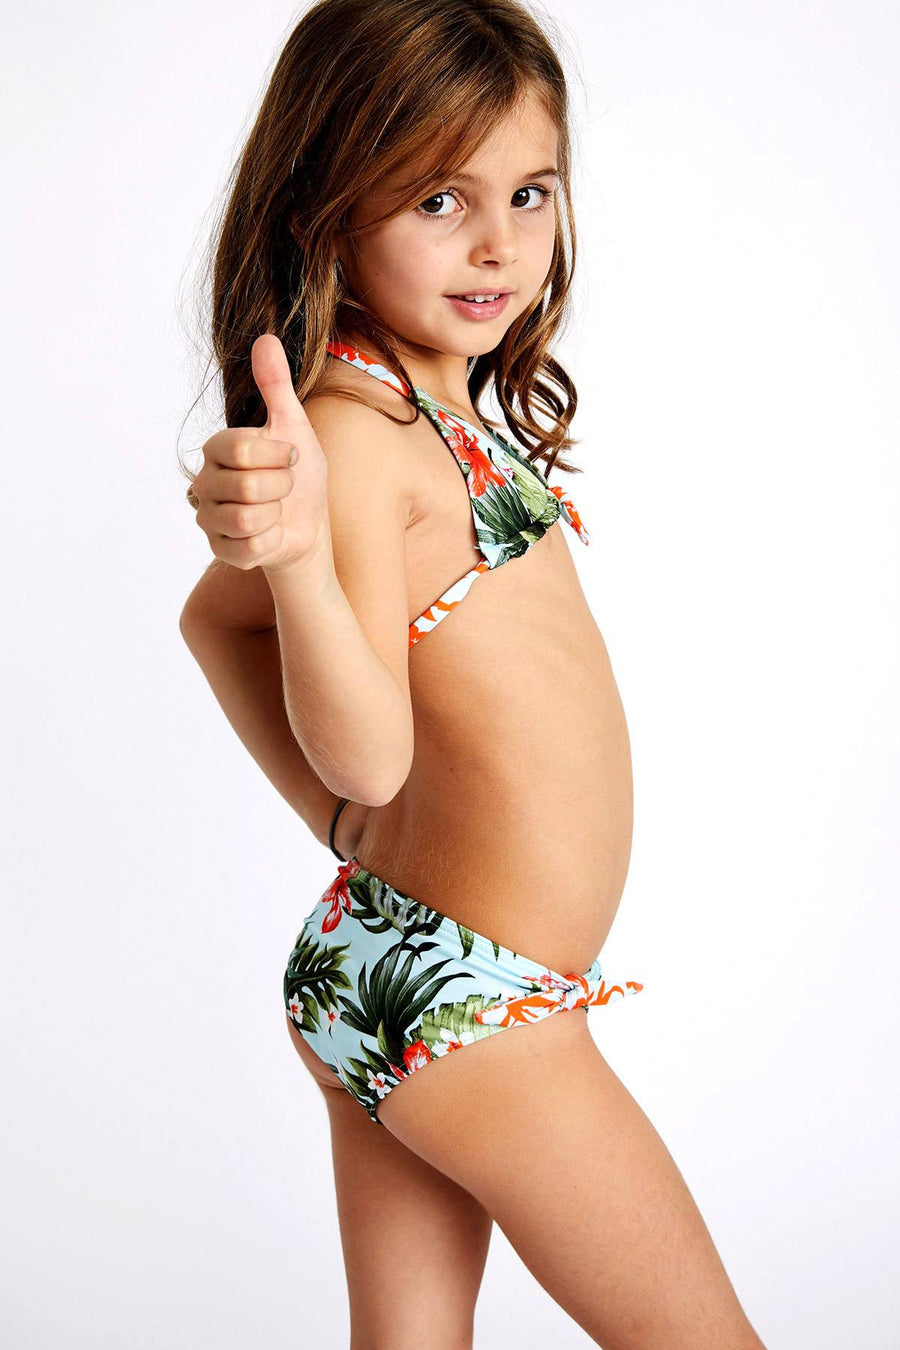 Banana Moon Girls Bikini Iquitos - Key West Swimwear